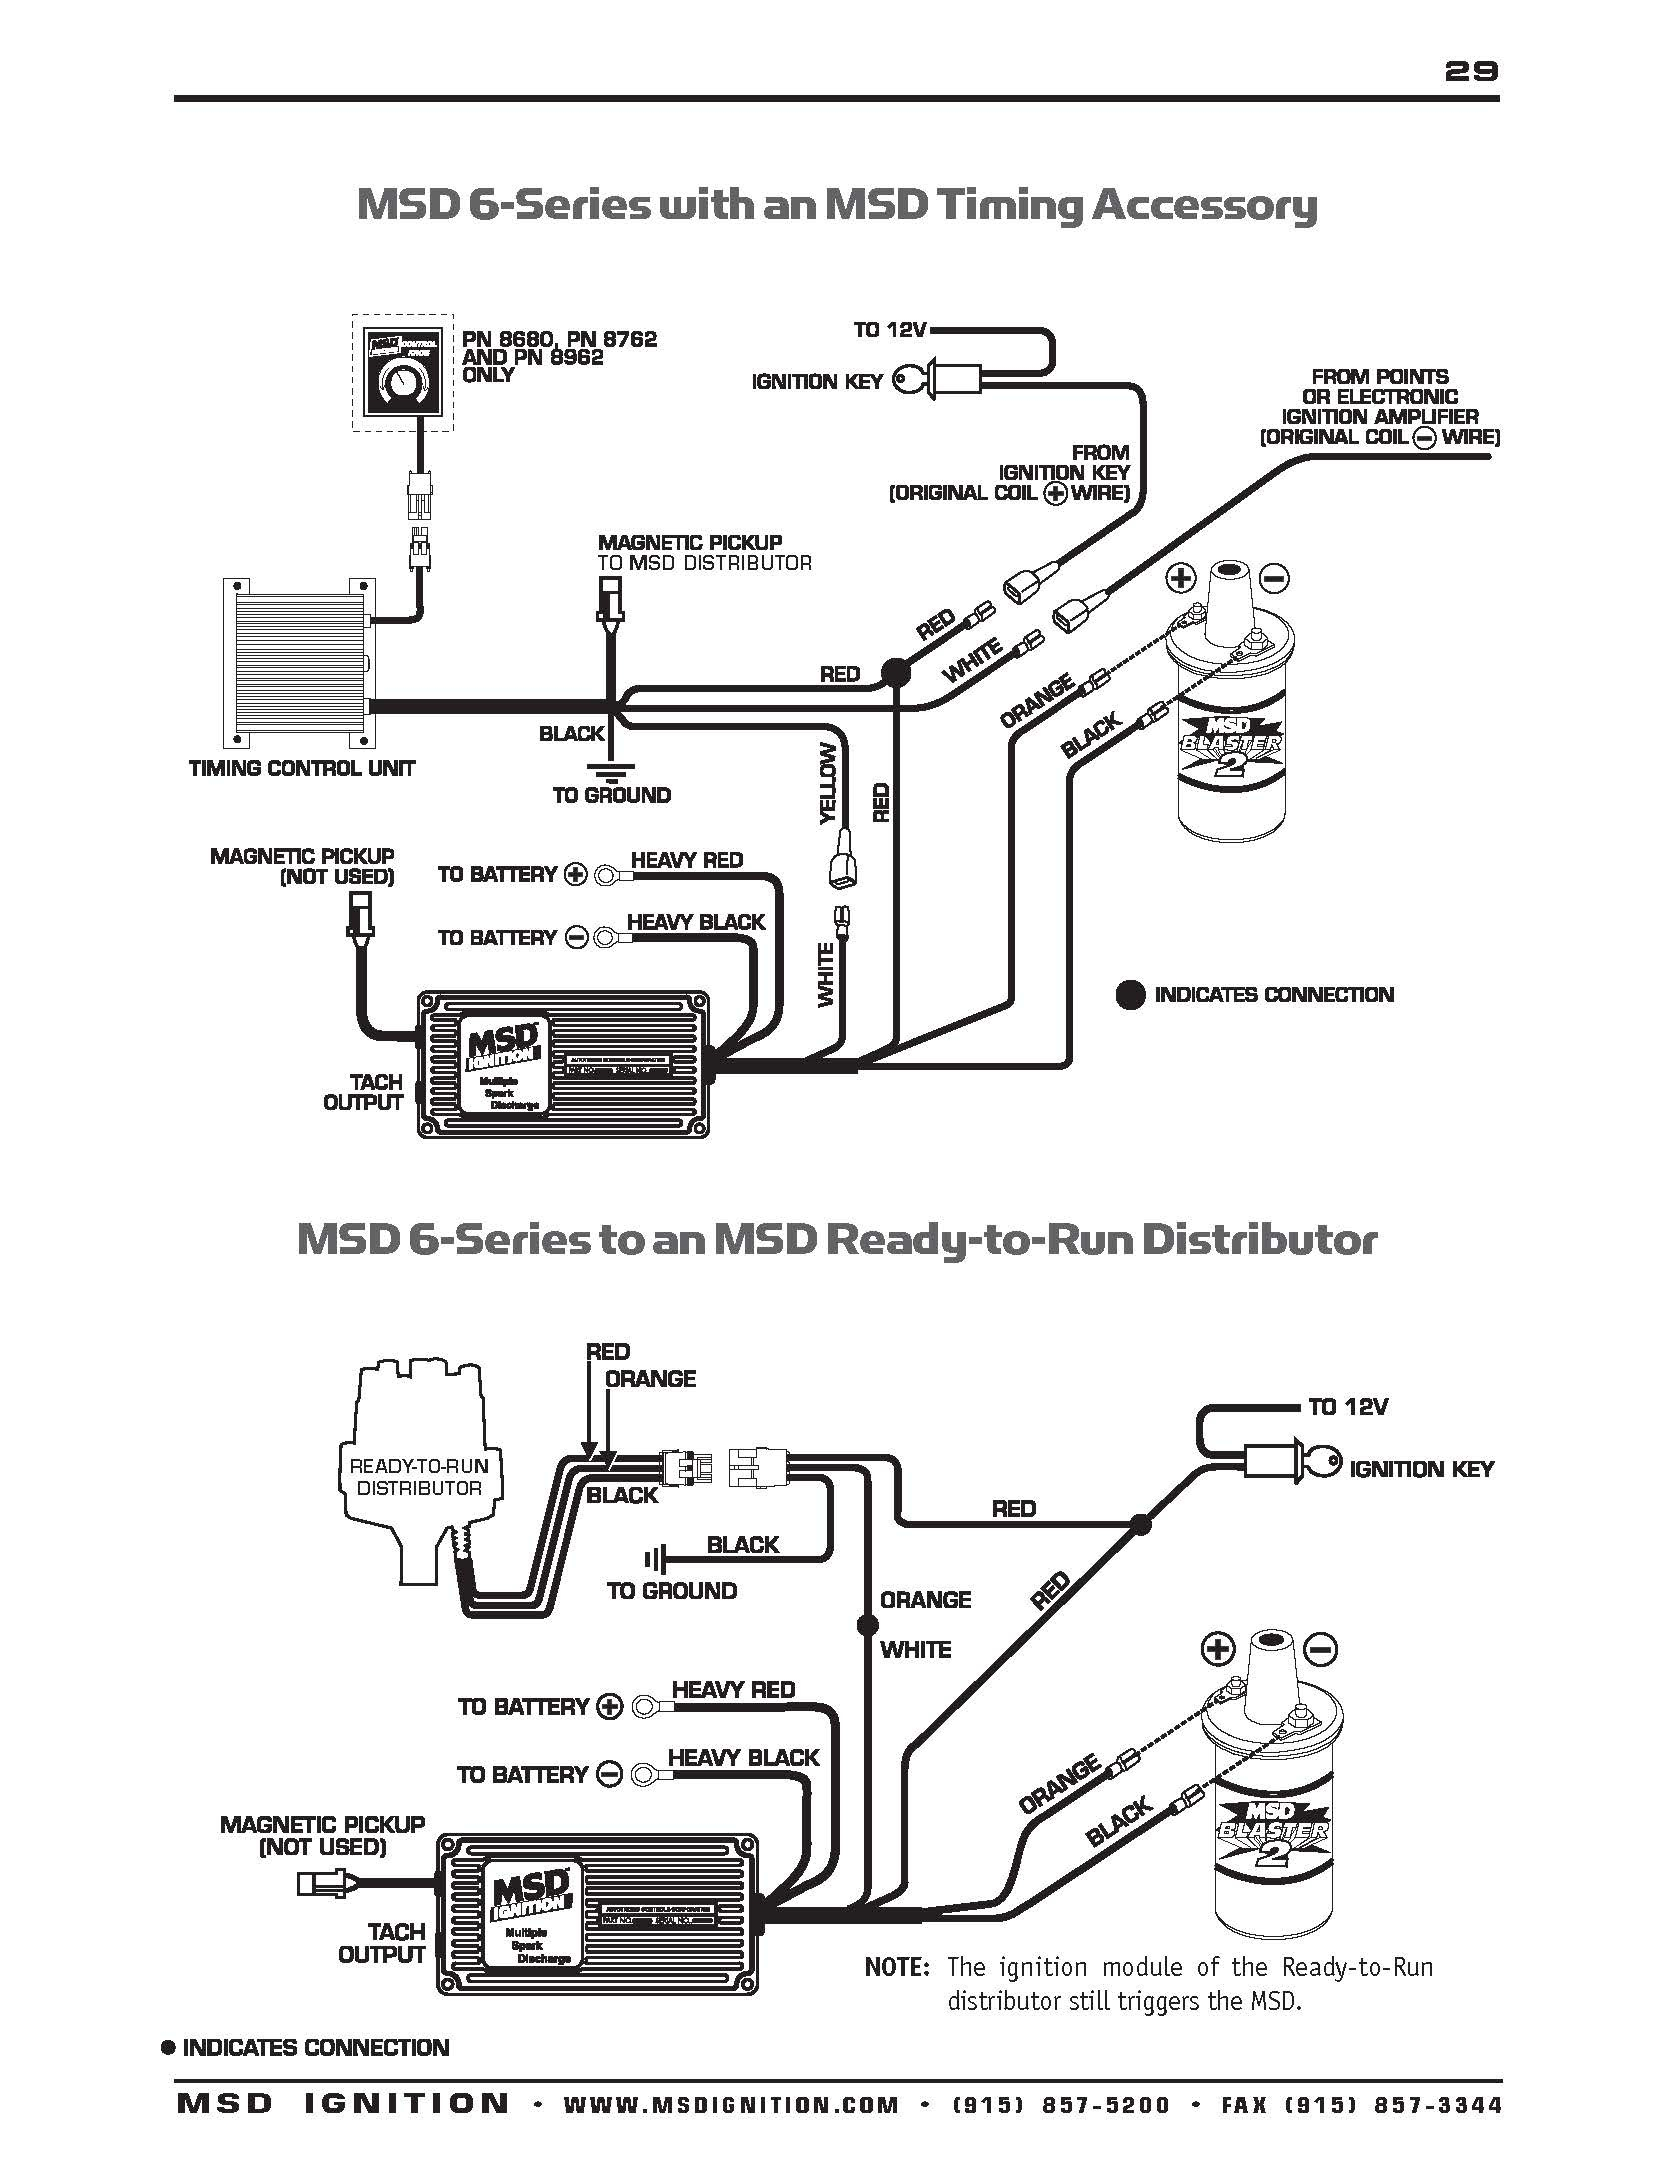 hight resolution of msd wiring diagram 280zx wiring diagram article reviewmsd wiring diagram 280zx wiring diagram megamsd wiring diagram